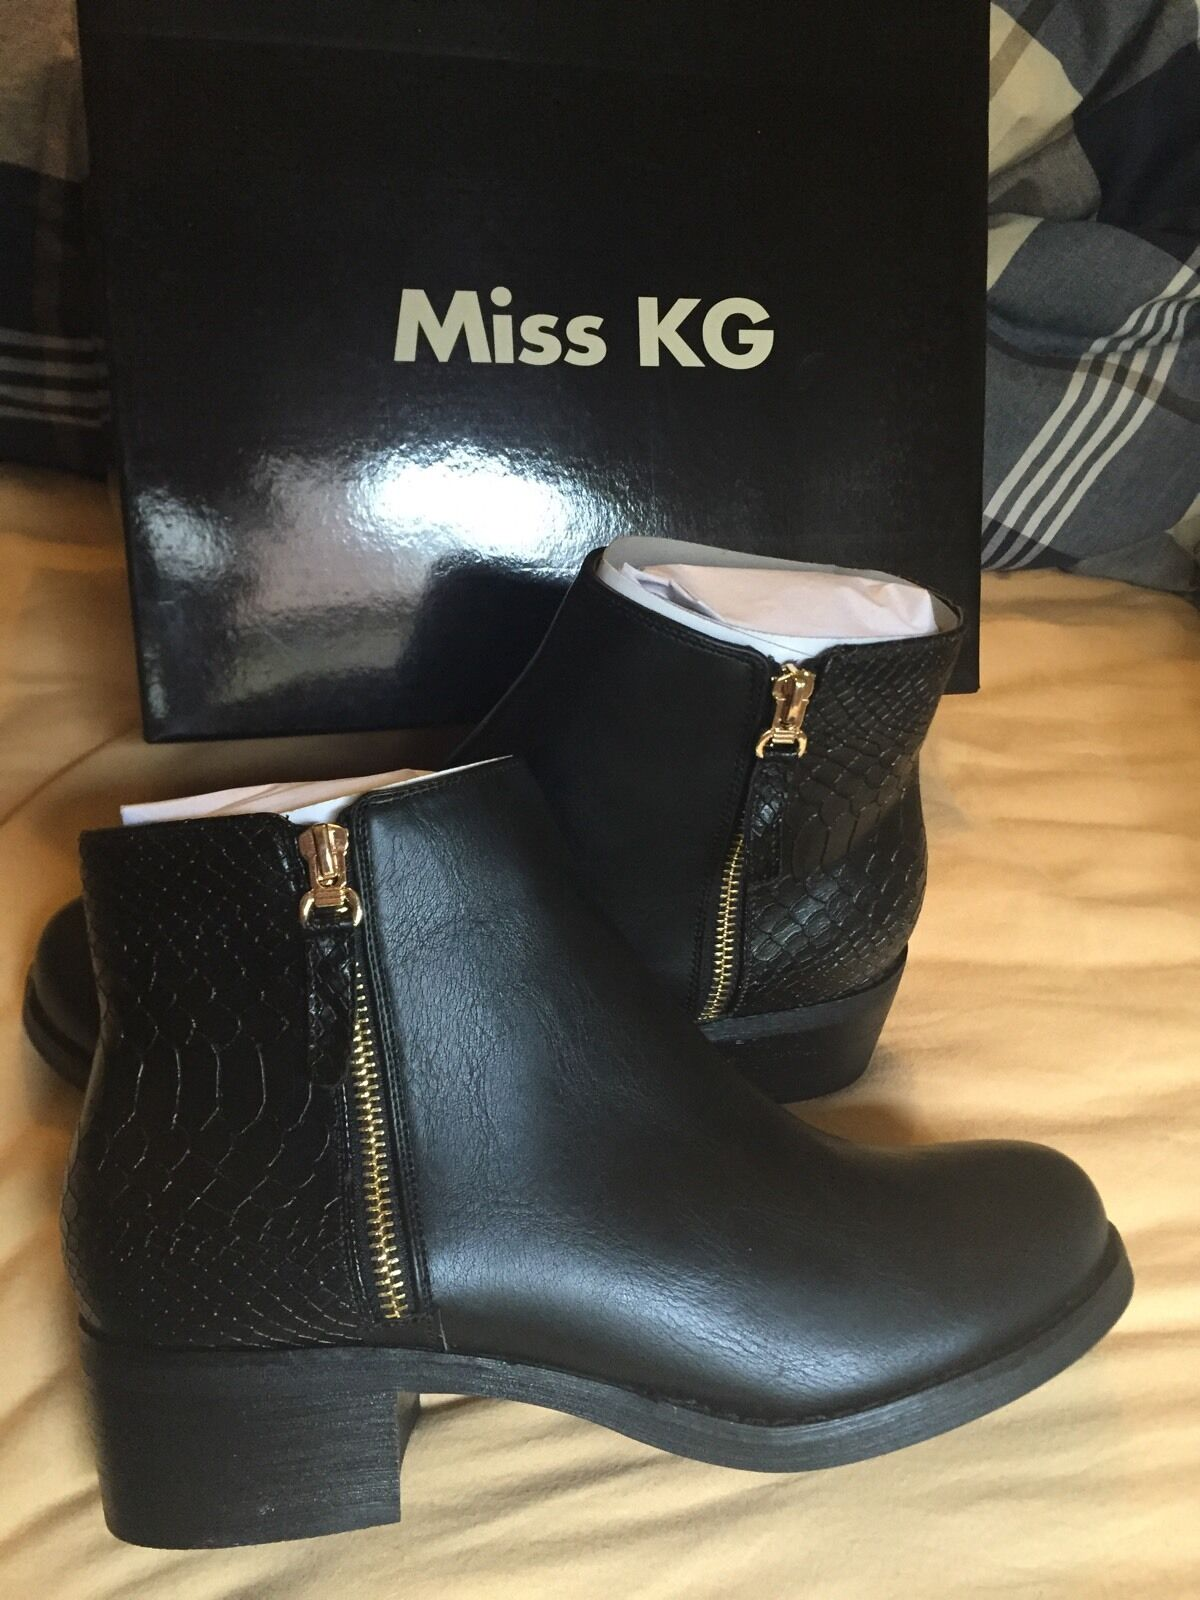 Miss KG chaussures noires Bottines Taille UK 4 Euro 37  85 £